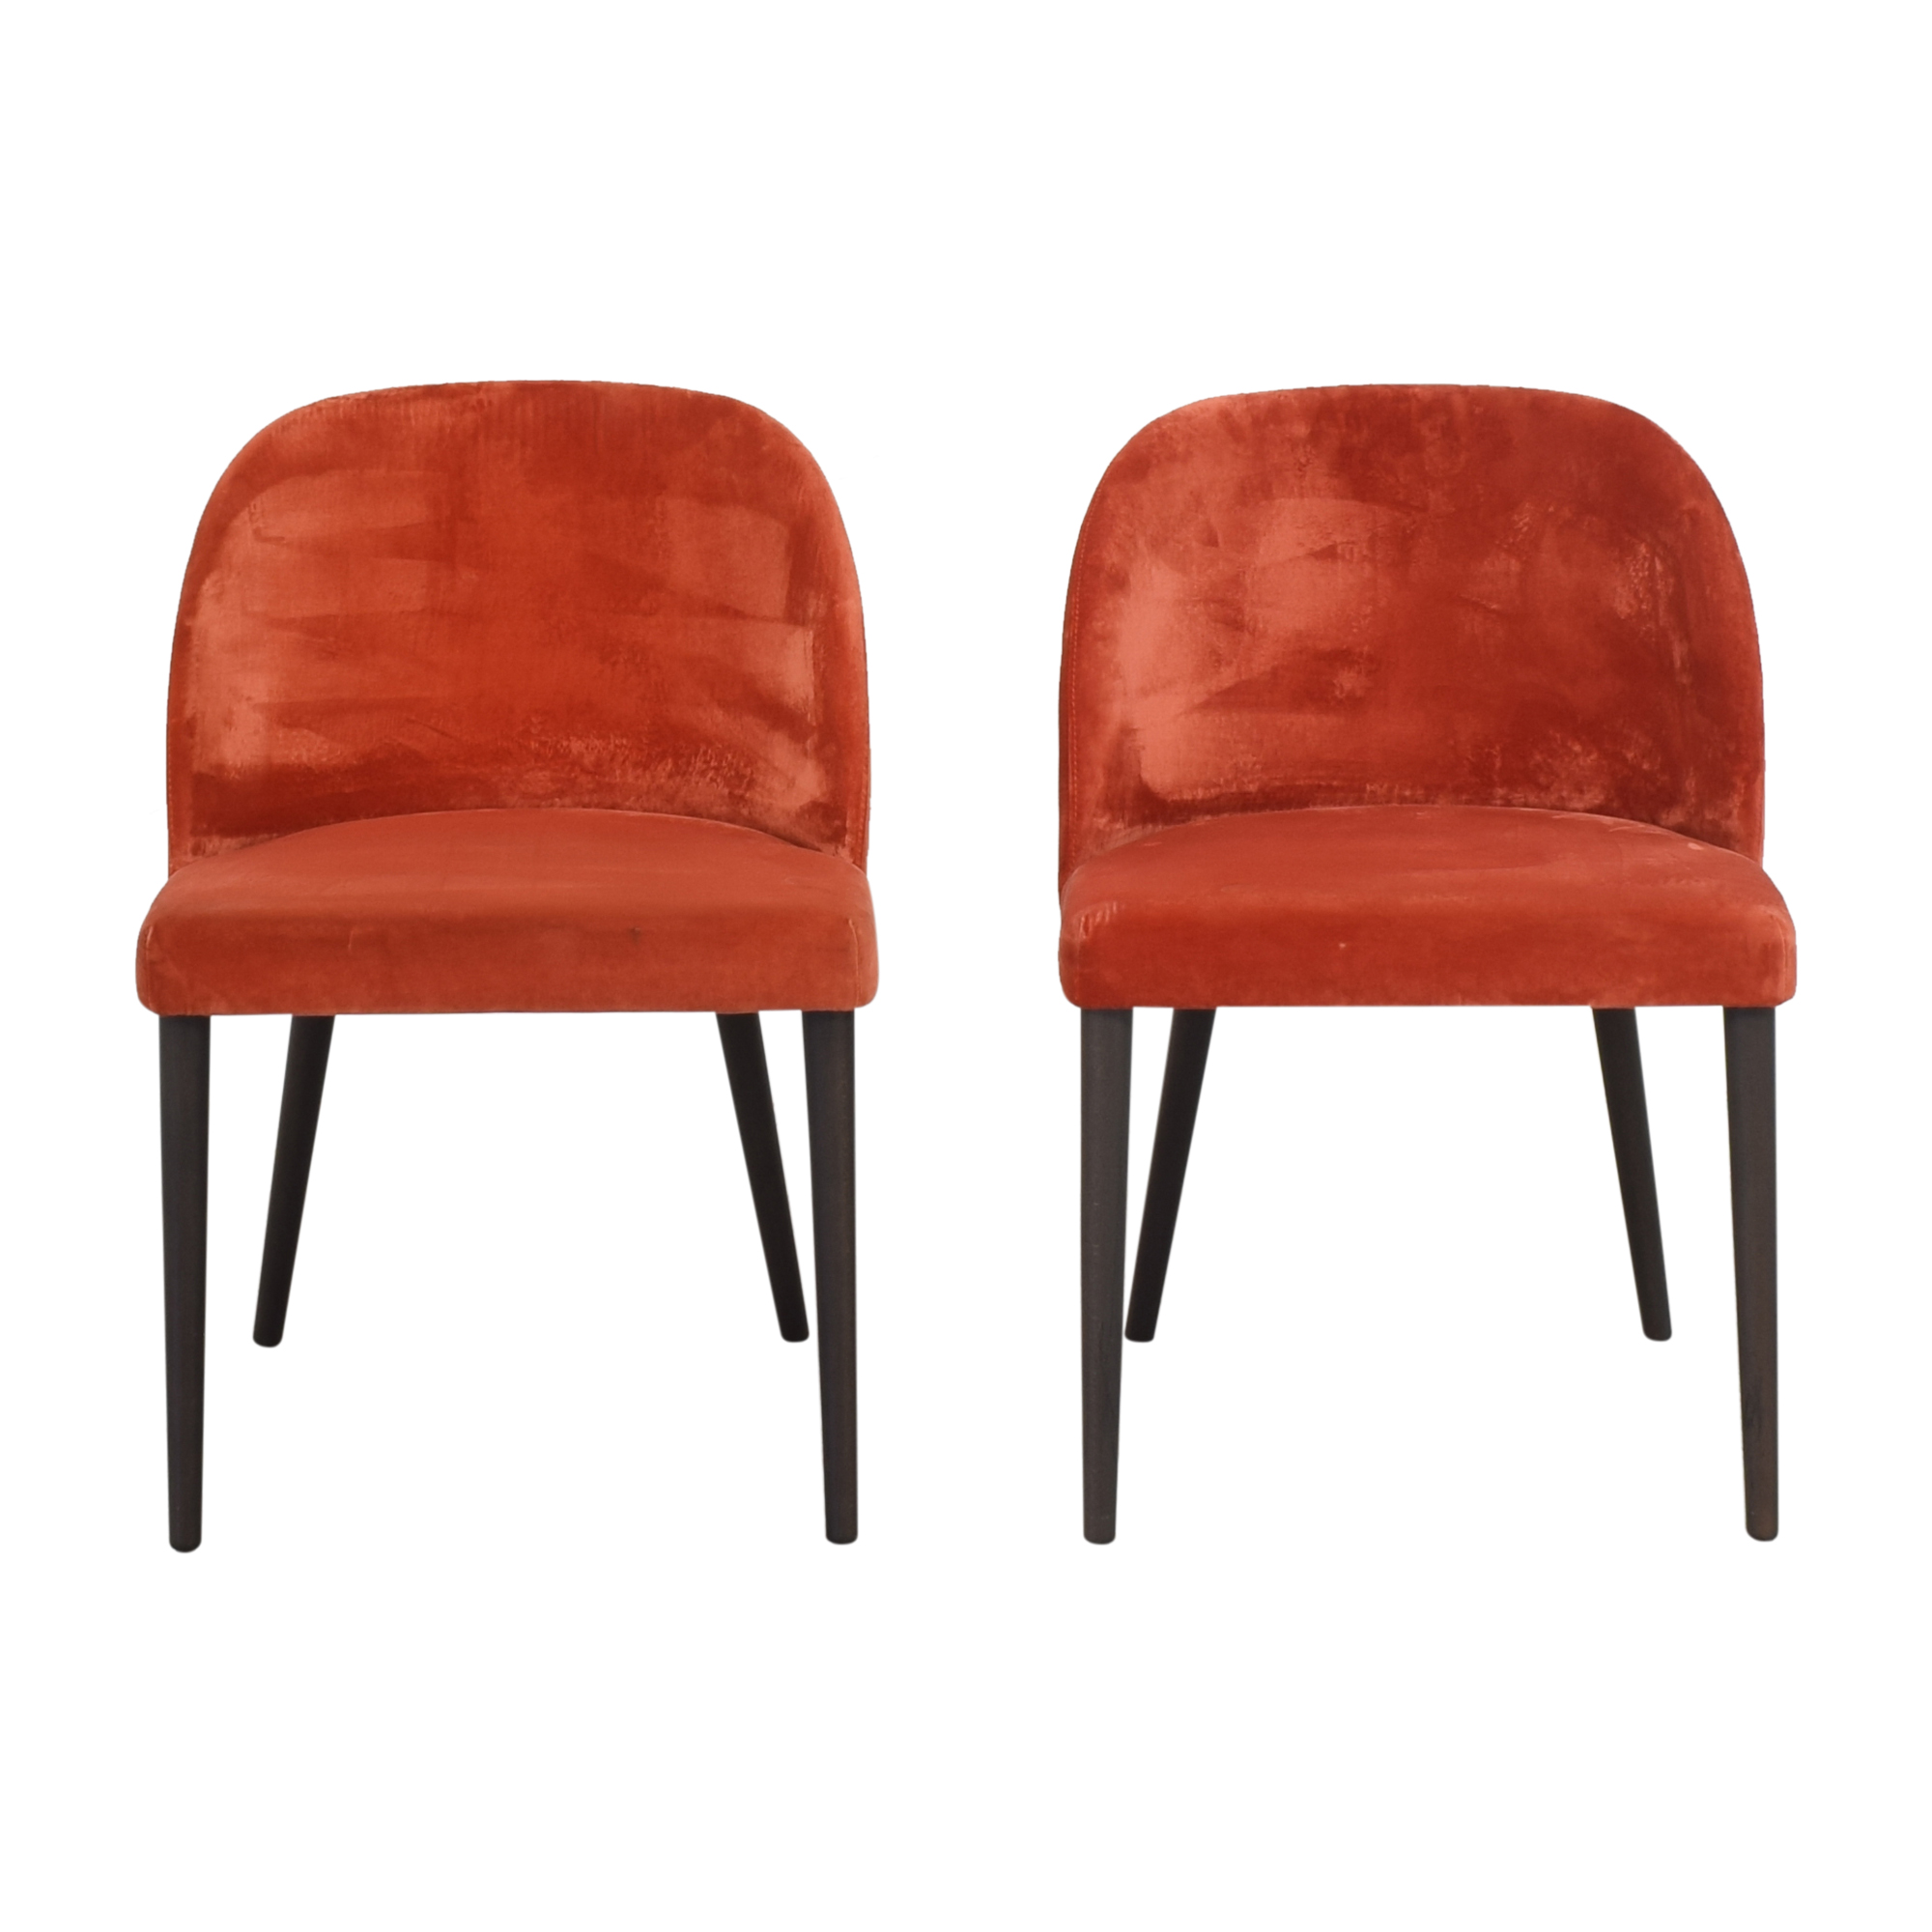 Crate & Barrel Crate & Barrel Camille Dining Chairs Chairs